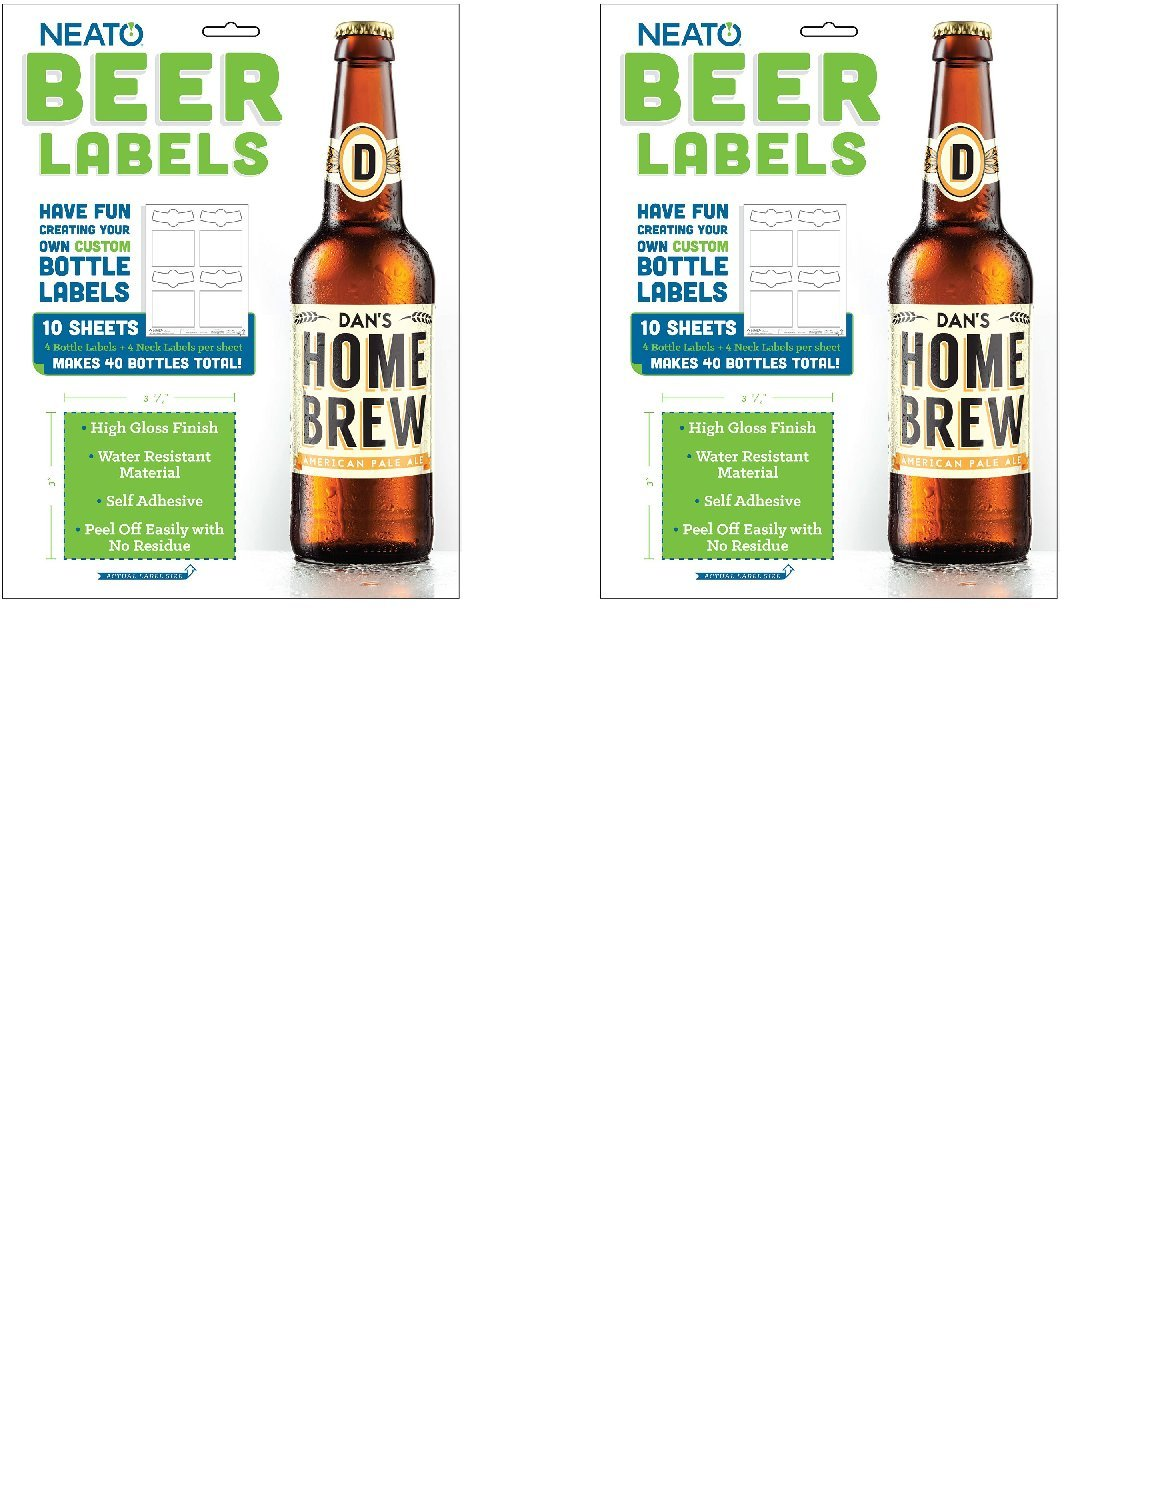 Neato Beer Bottle Labels with Online Beer Label Software Included - High Gloss - Water Resistant - Removable - 40 Labels ... (2)